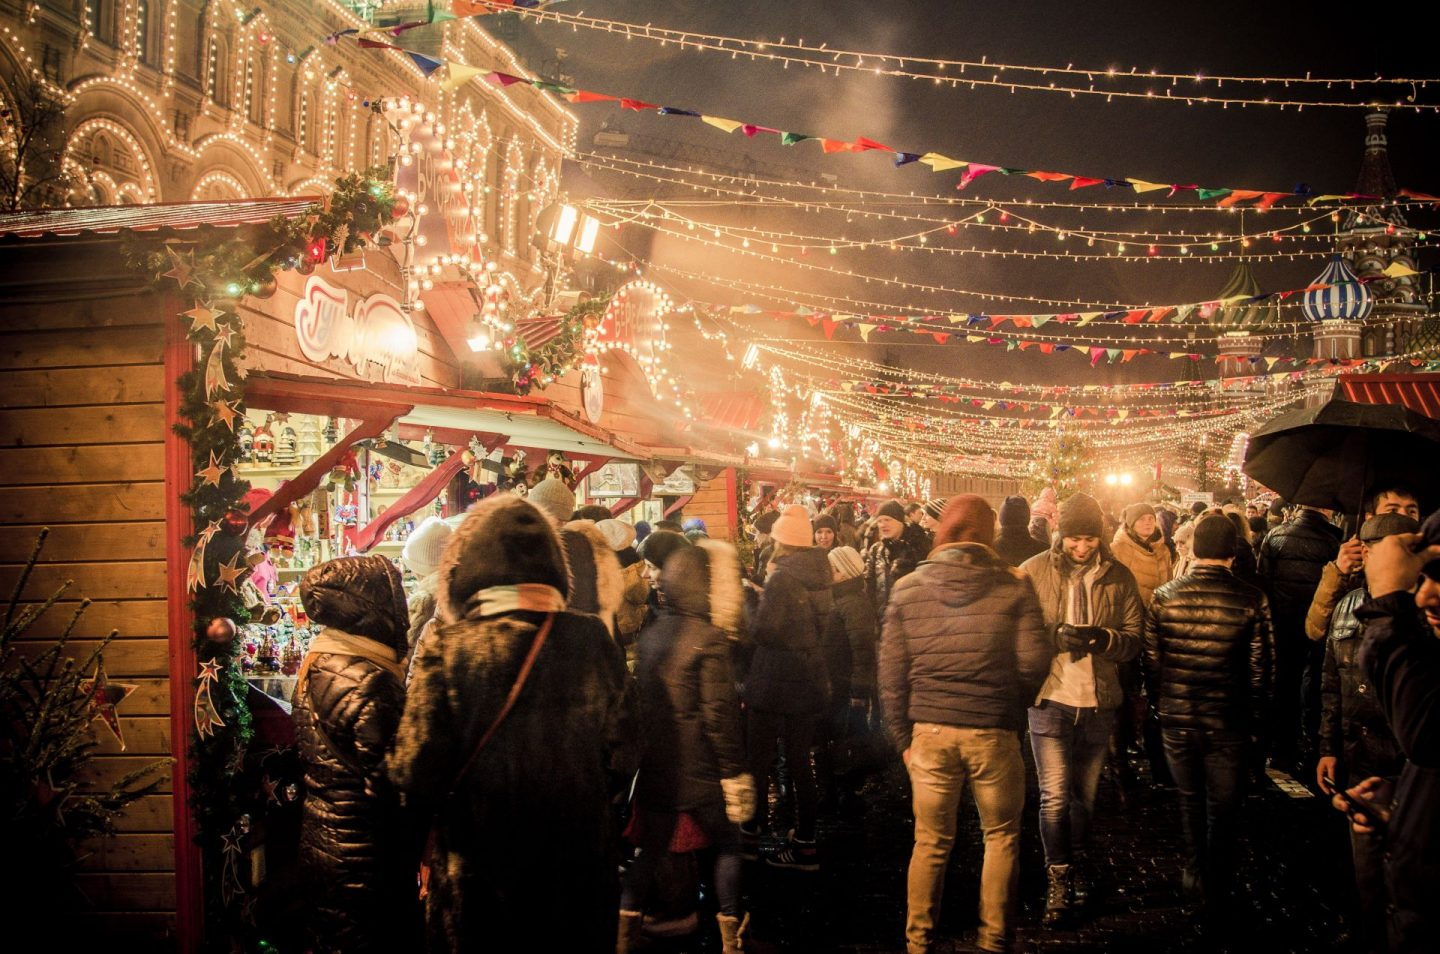 christmas market, christmas lights, where to go during christmas, the best european cities to visit during christmas, holiday season, travel, city trip